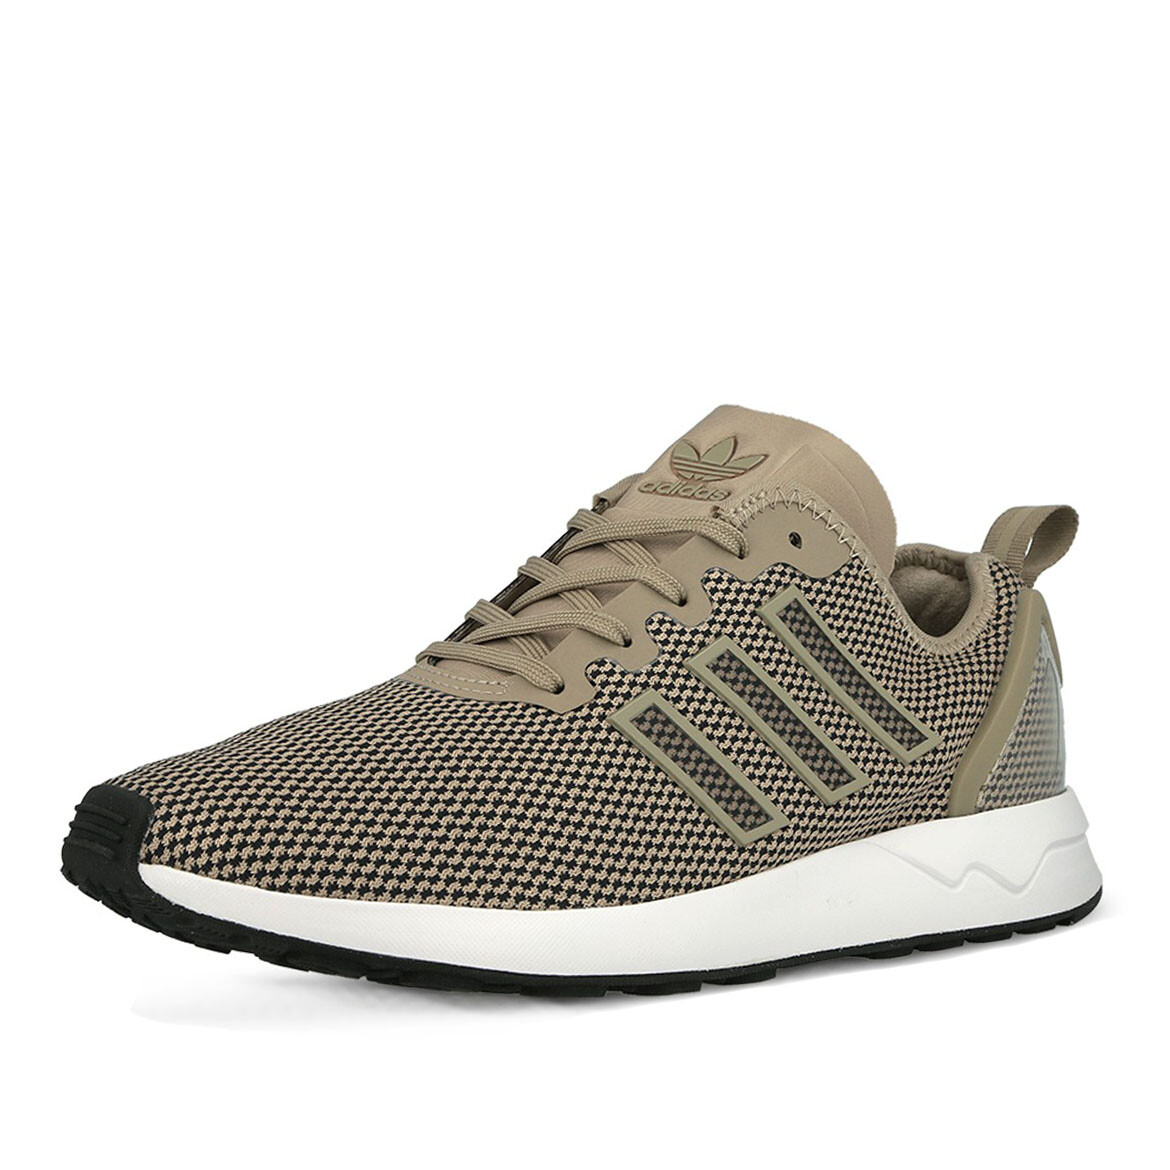 Image of Adidas zx flux adv heren sneakers